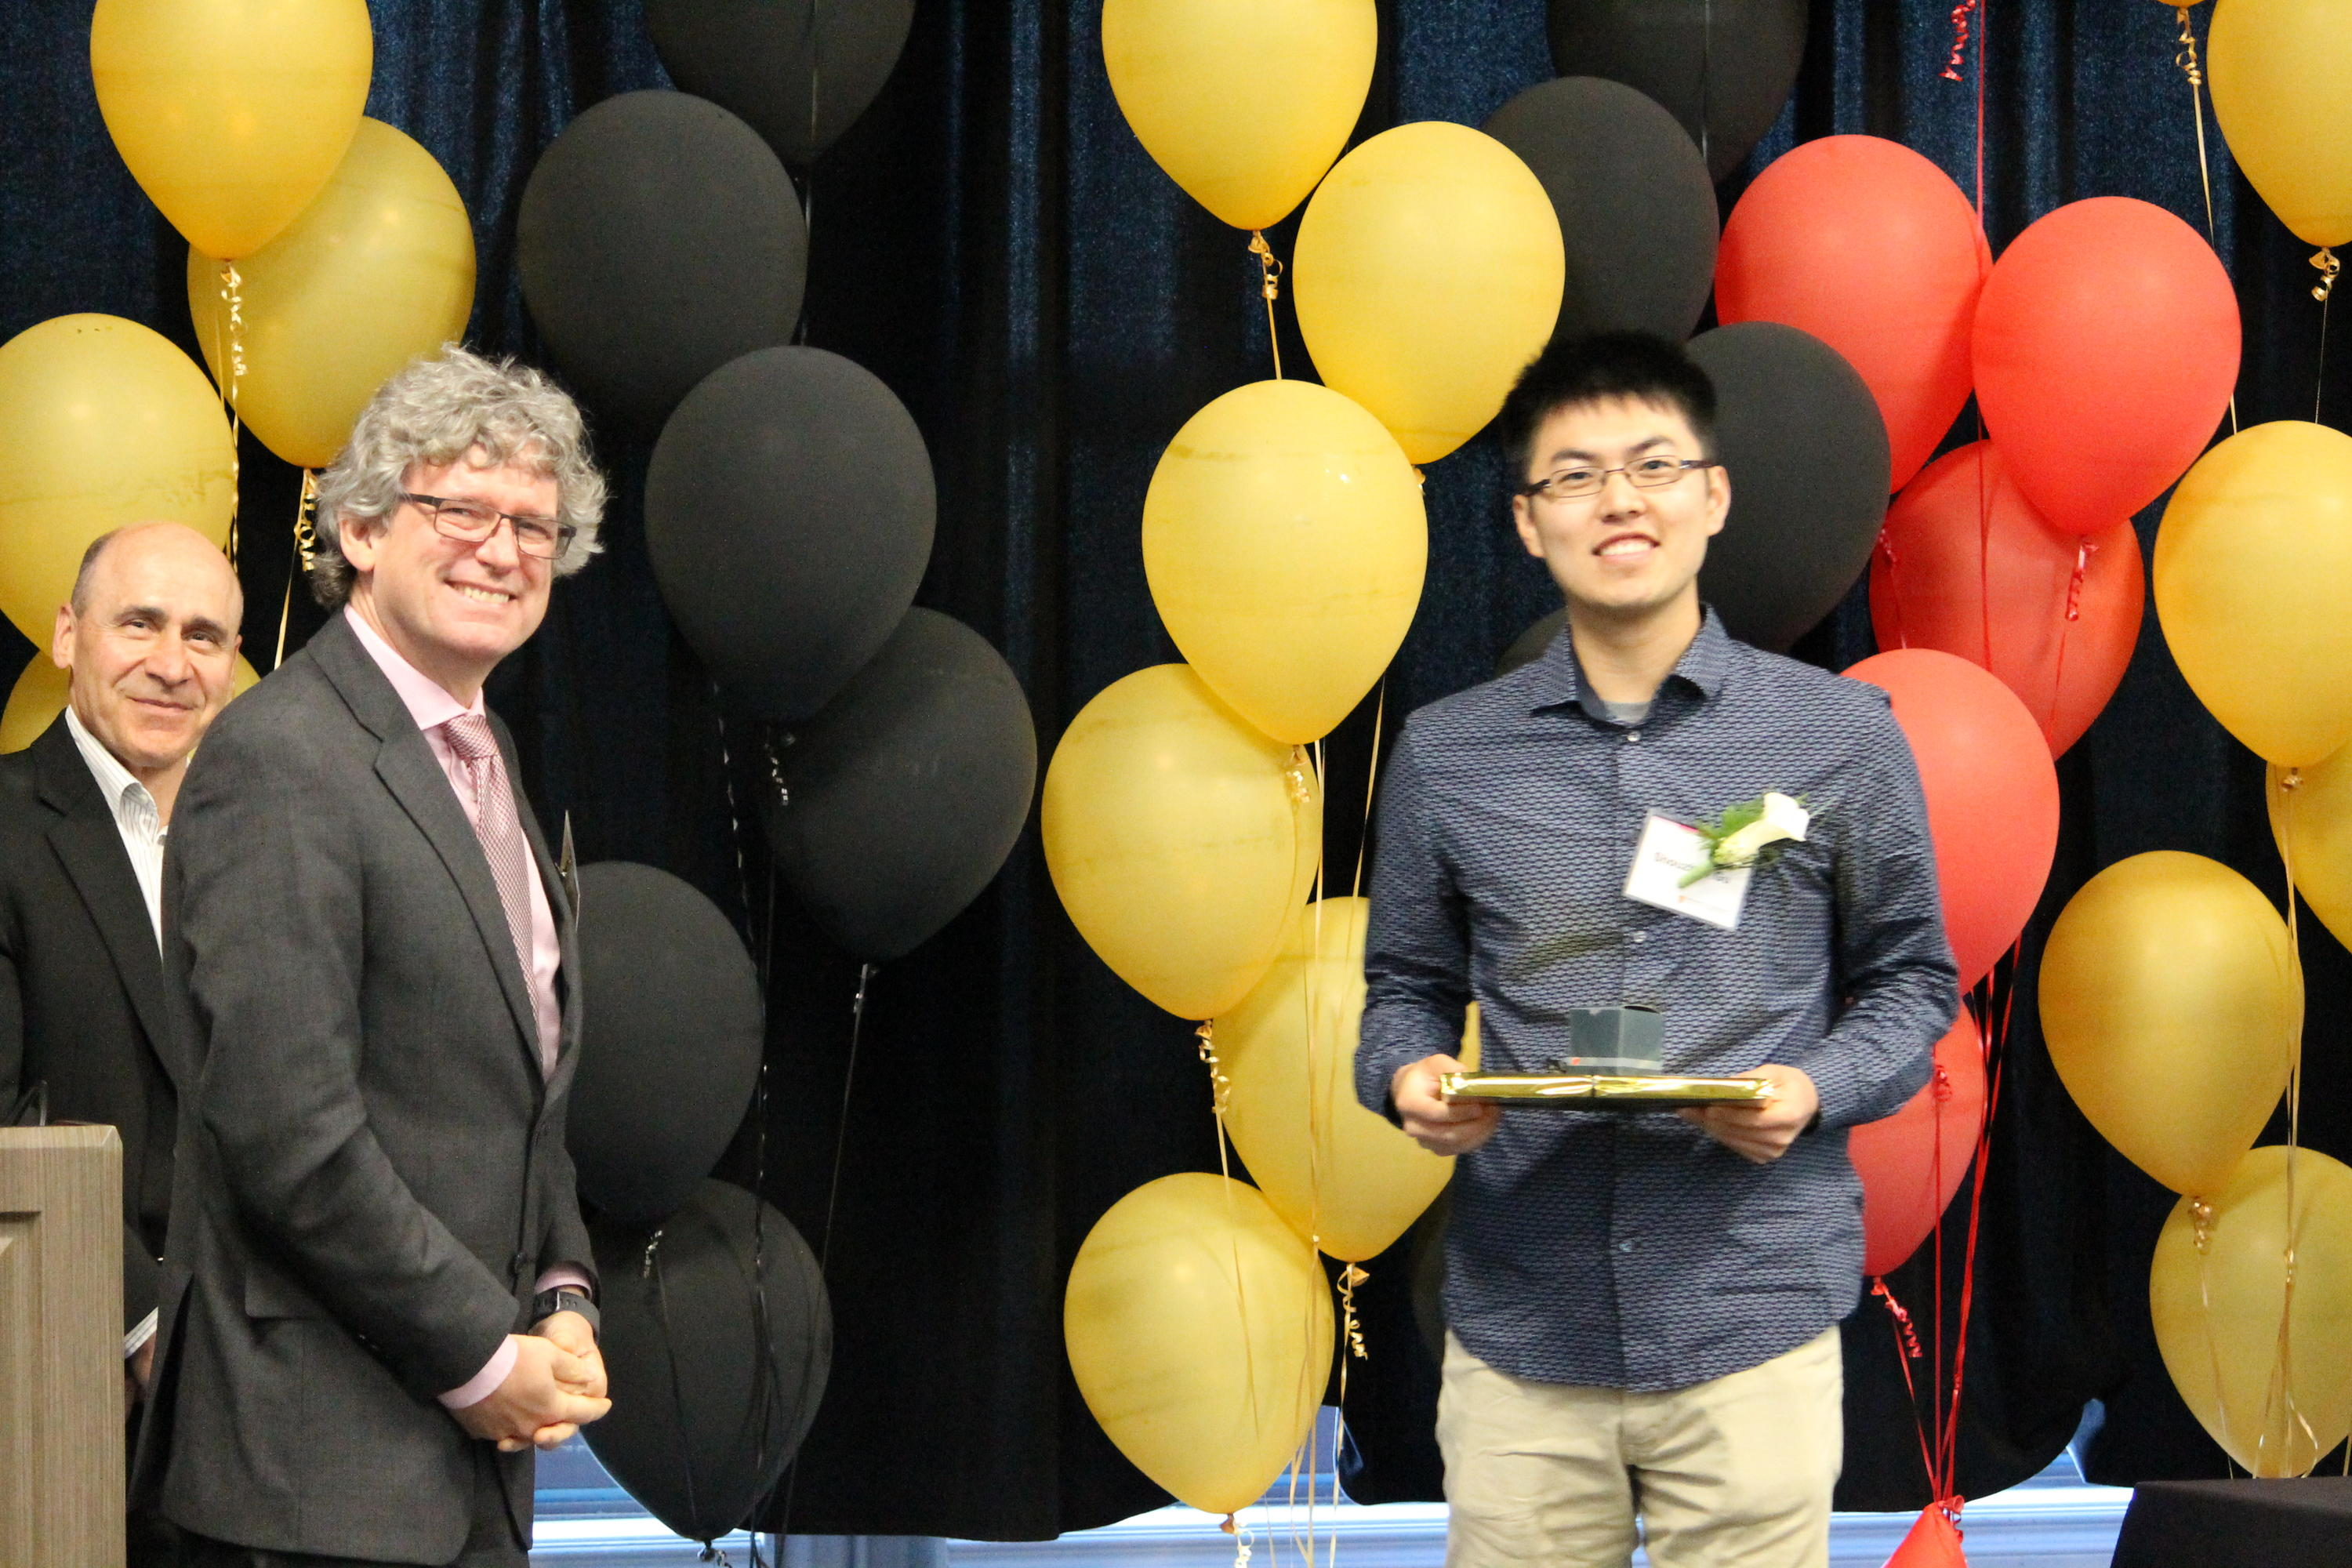 Bailey Gu is honoured by Dean Stephen Watt and Associate Dean Serge D'Alessio at the Faculty of Mathematics Convocation Dinner